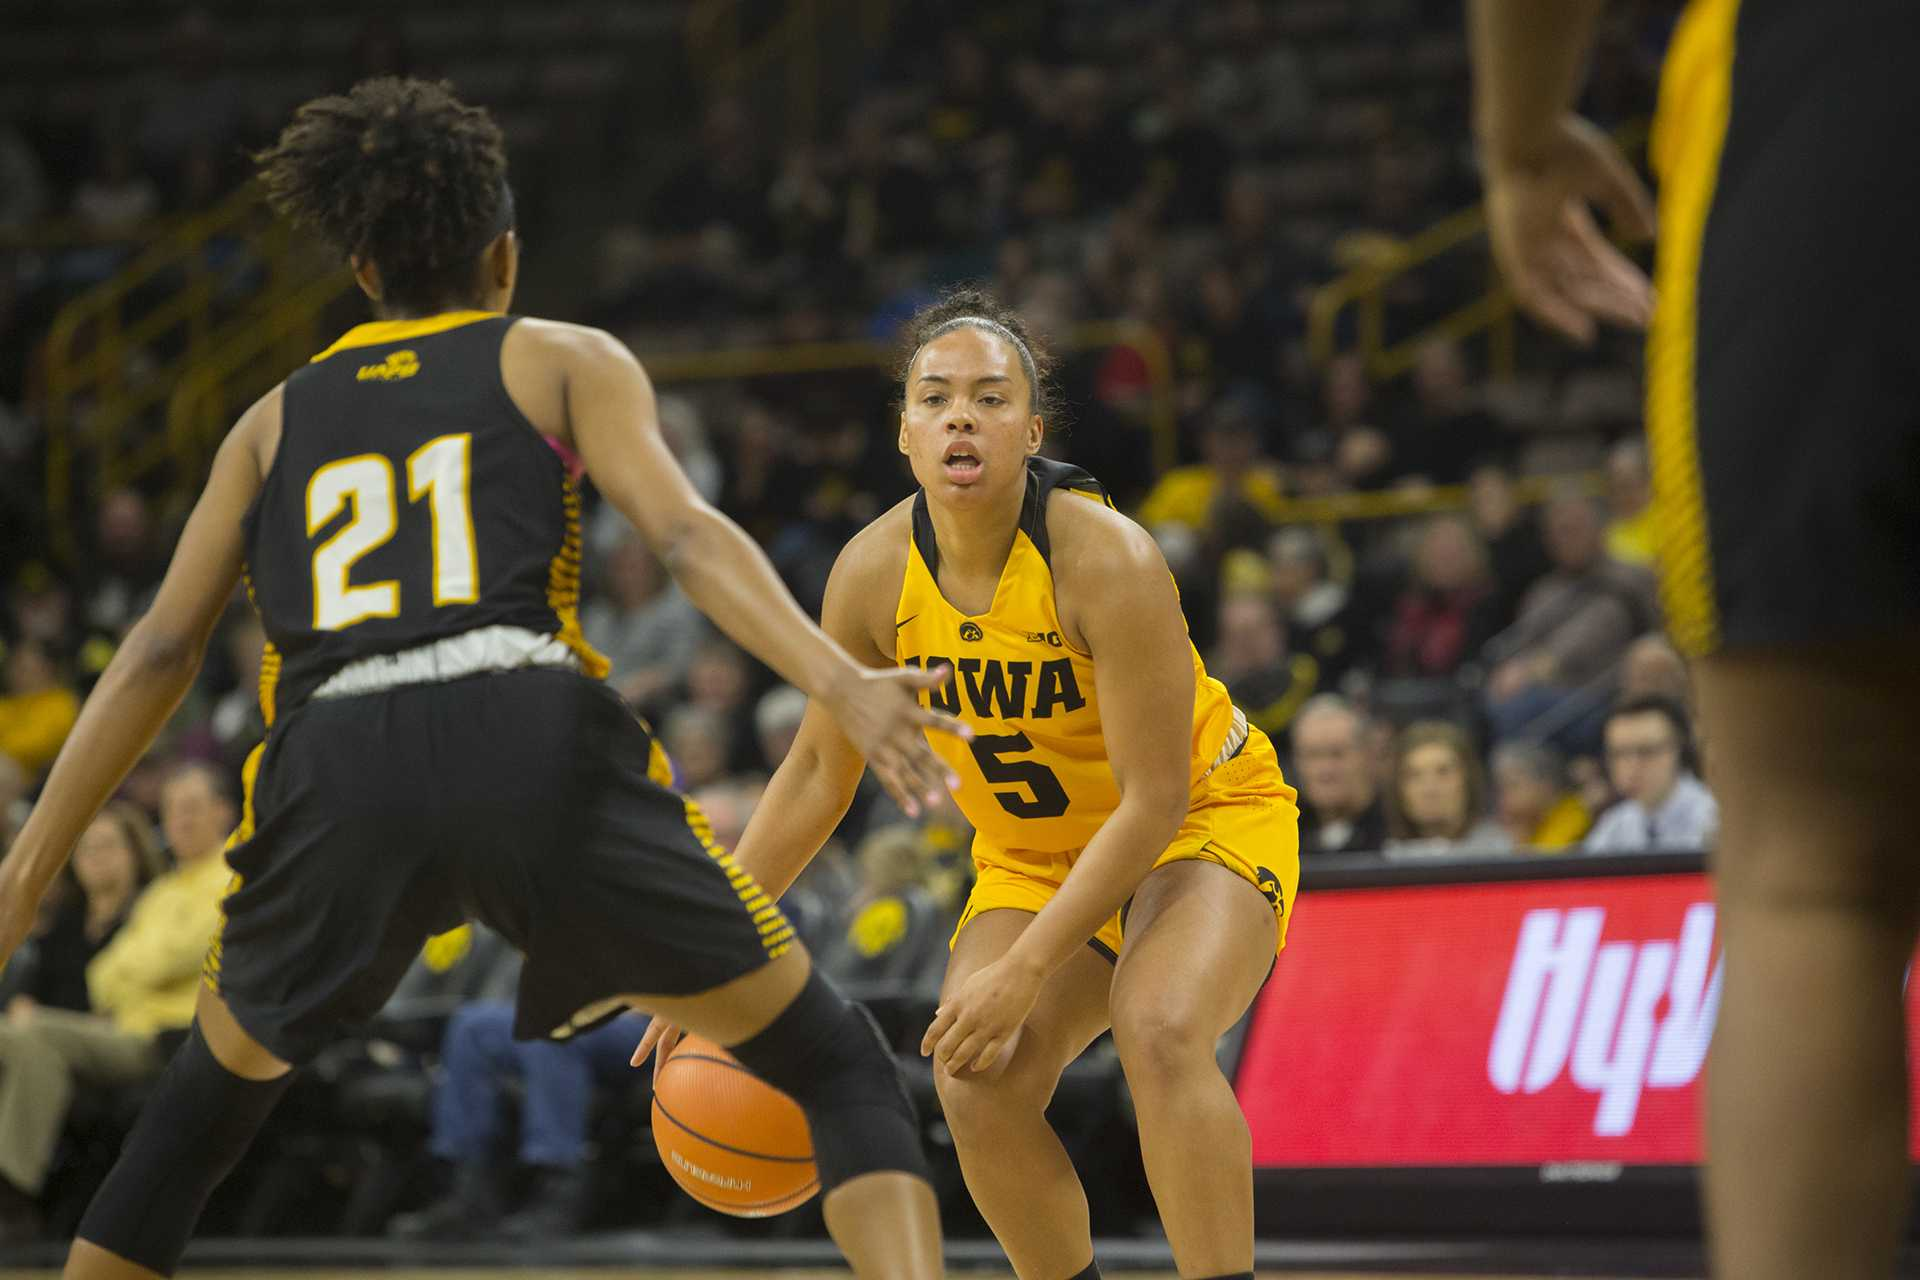 Iowa guard Alexis Sevillian dribbles the ball during the Iowa/Arkansas-Pine Bluff basketball game in Carver-Hawkeye Arena on Saturday, Dec. 9, 2017. The Hawkeyes defeated the Golden Lions, 85-45. (Lily Smith/The Daily Iowan)